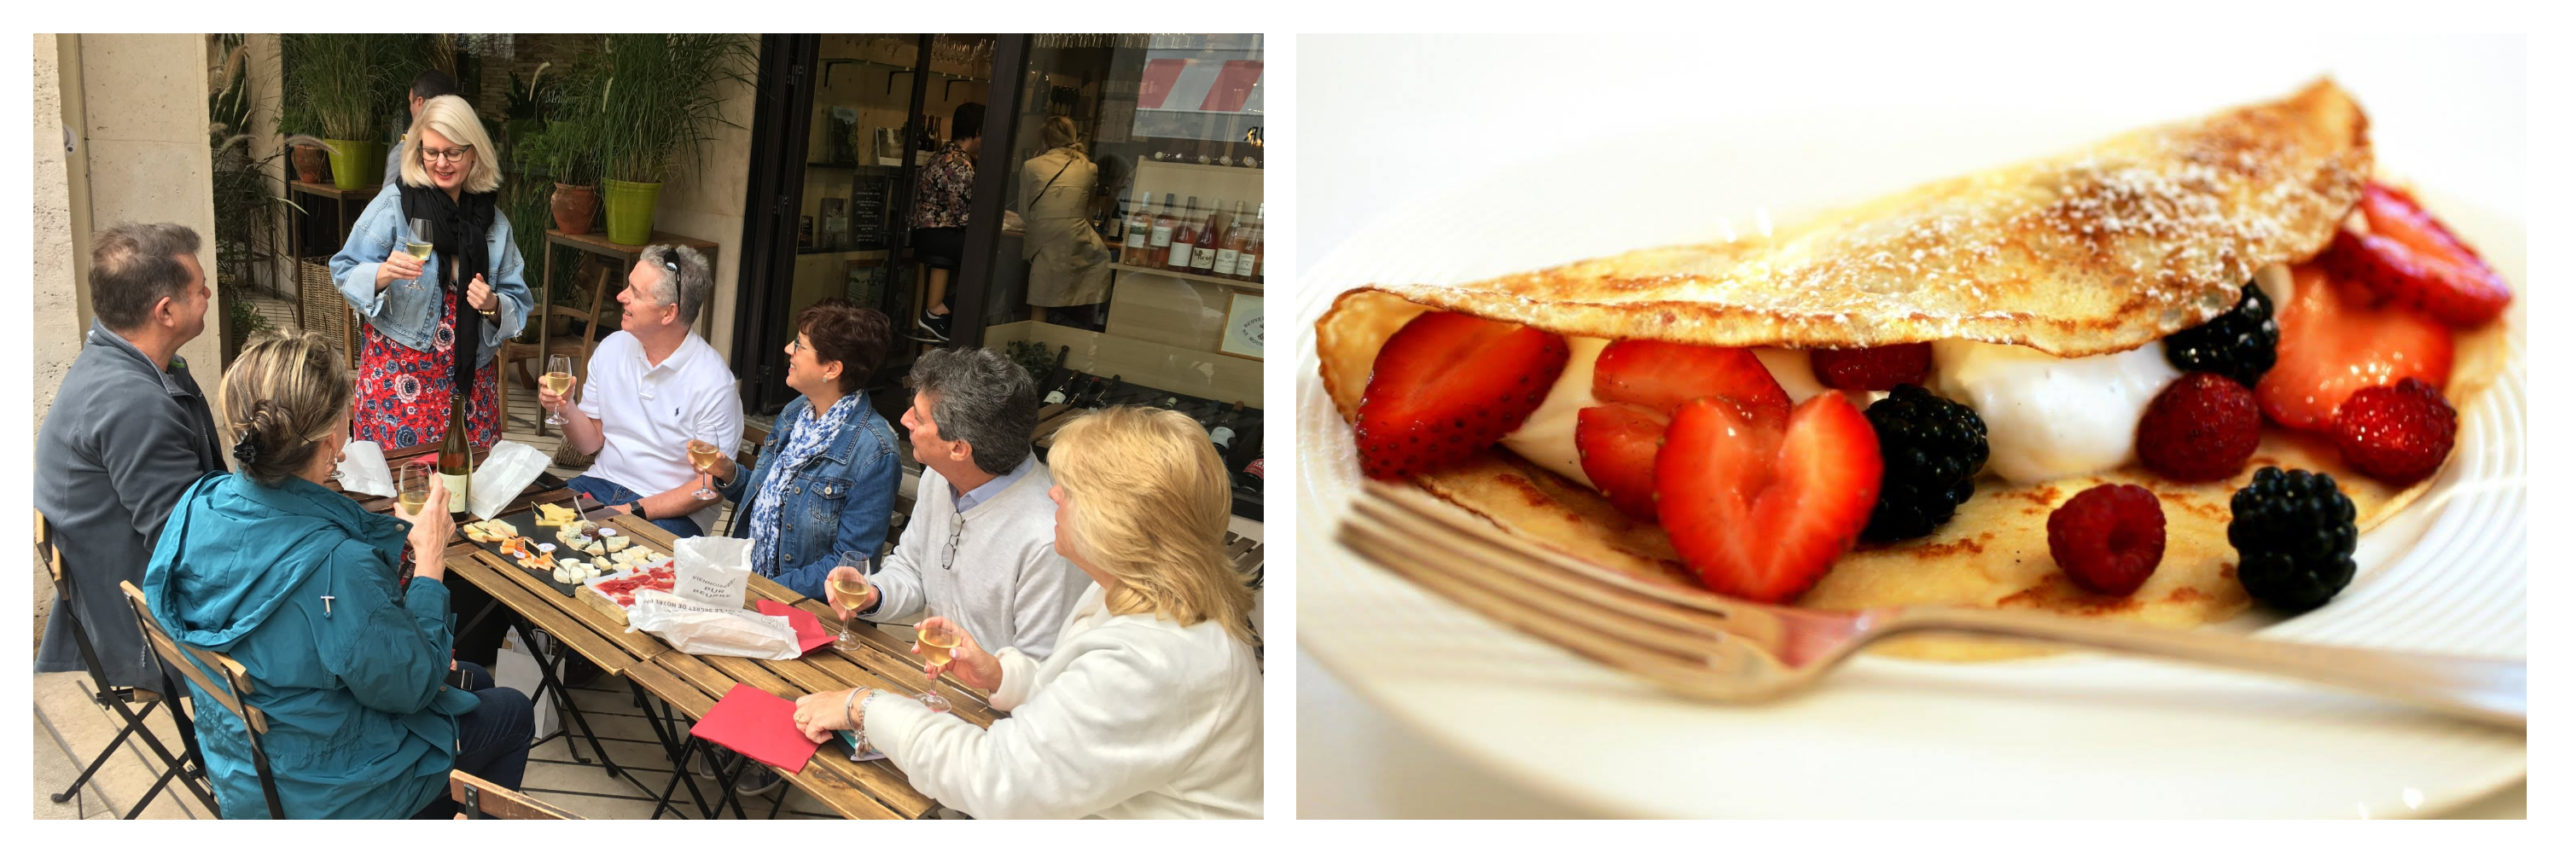 On left: Lisa Rankin, founder of the food tour company Flavors of Paris, leads a guided visit on wine, cheese, and charcuterie at a local Paris restaurant. On right: An overflowing, golden, crispy crêpe is stuffed with whipped cream. strawberries, raspberries, and blackberries.